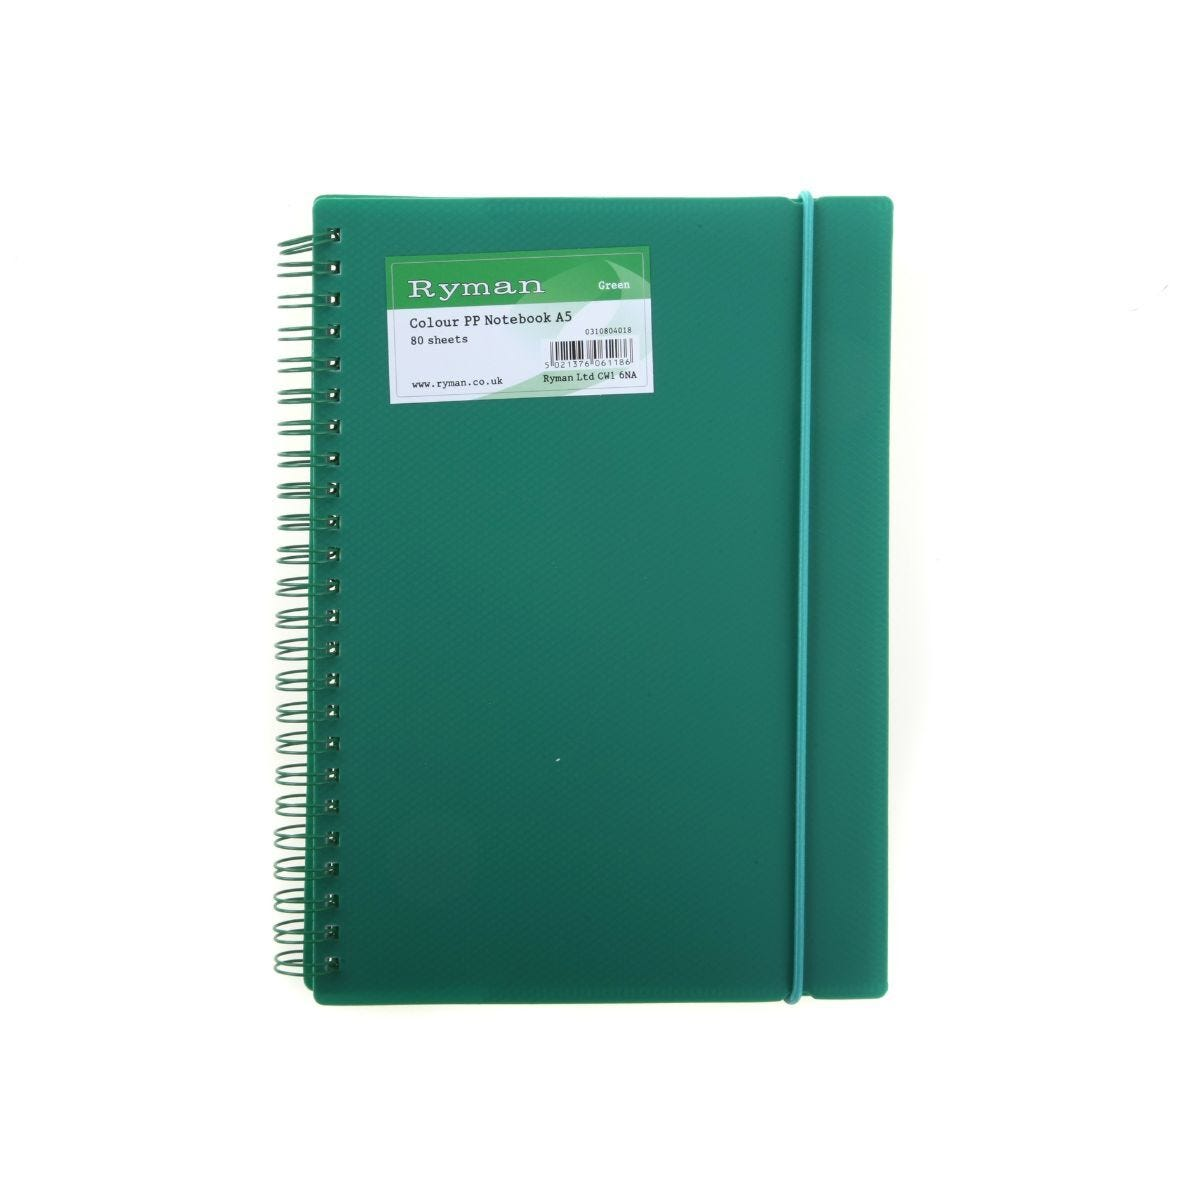 Ryman Notebook A5 Polypropylene 80 Pages 40 Sheets Green